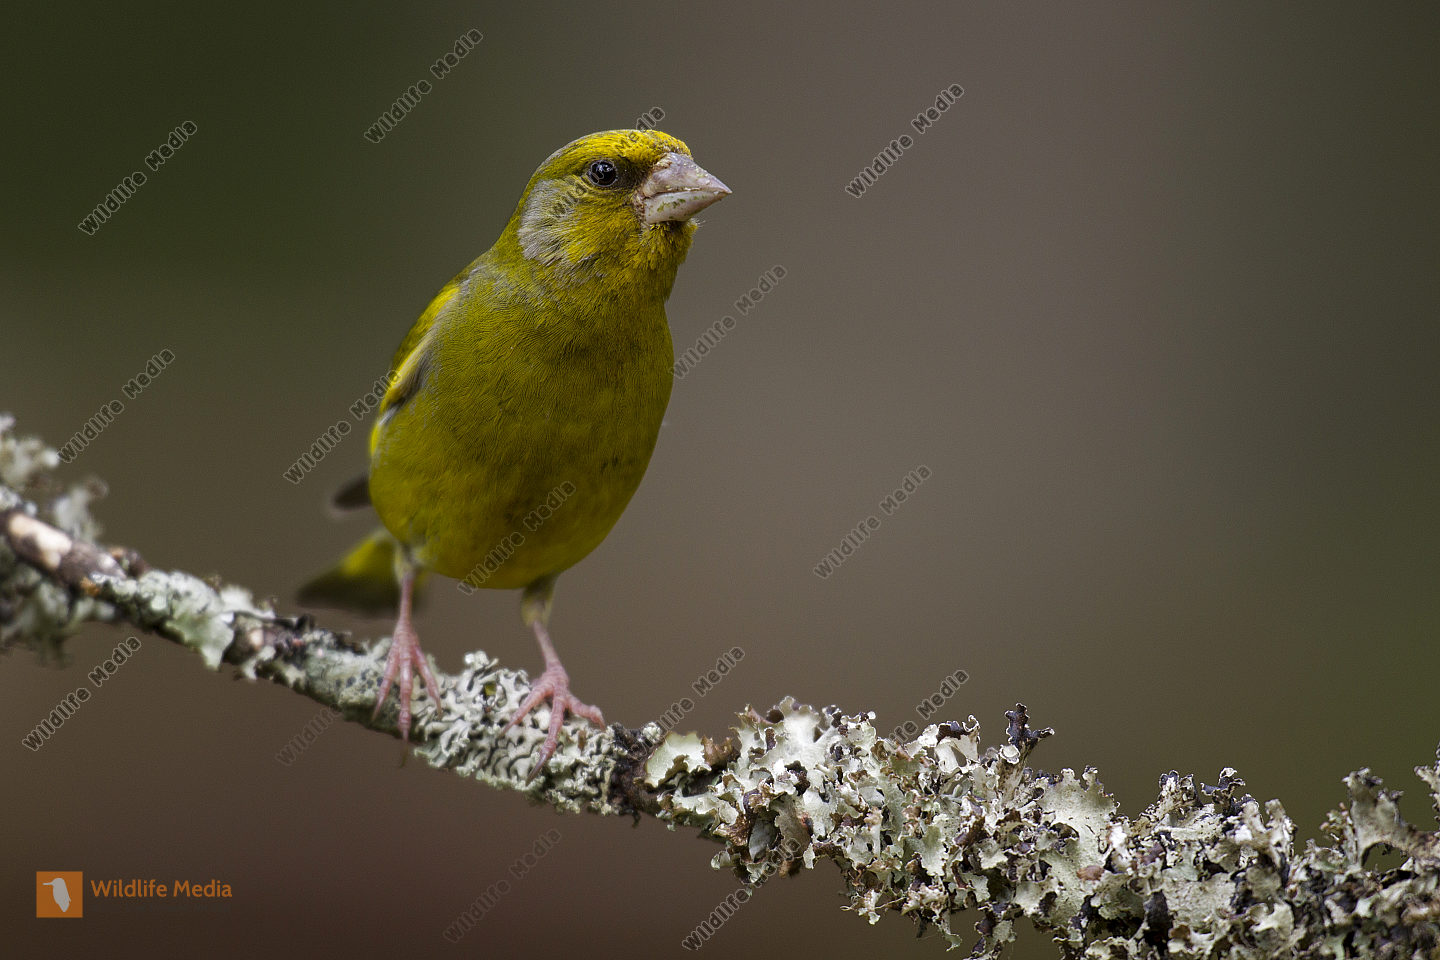 Grünfink / Chloris chloris / European greenfinch